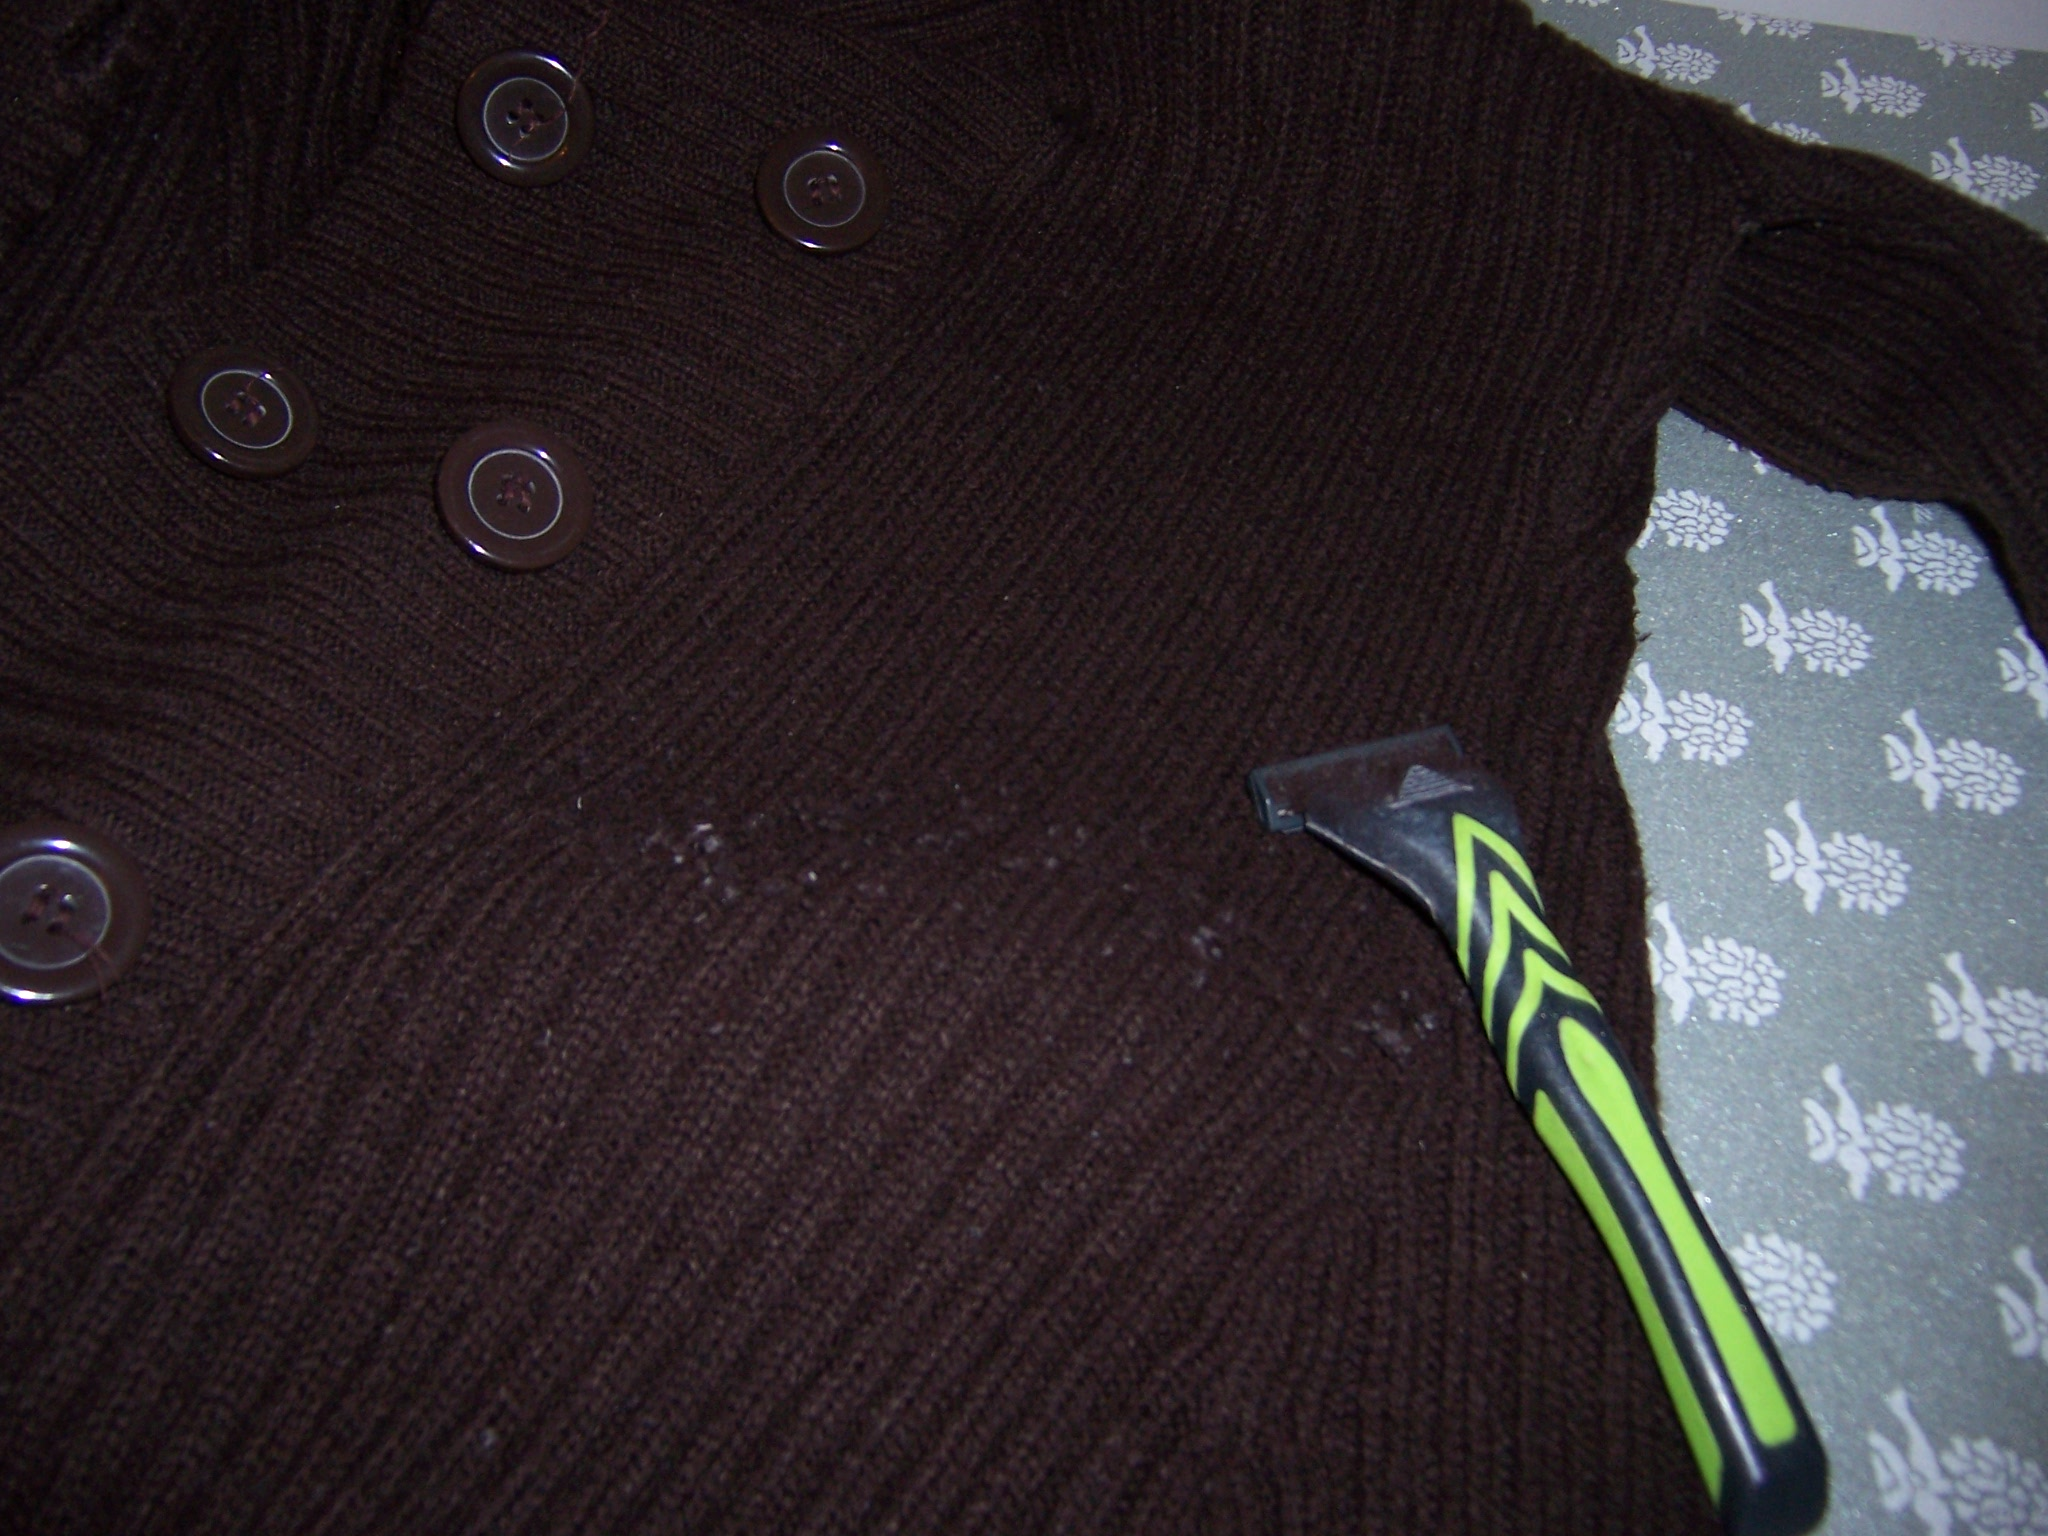 How to easily remove lint from a sweater with a razor and toothbrush an american in sicily - How to remove lint ...